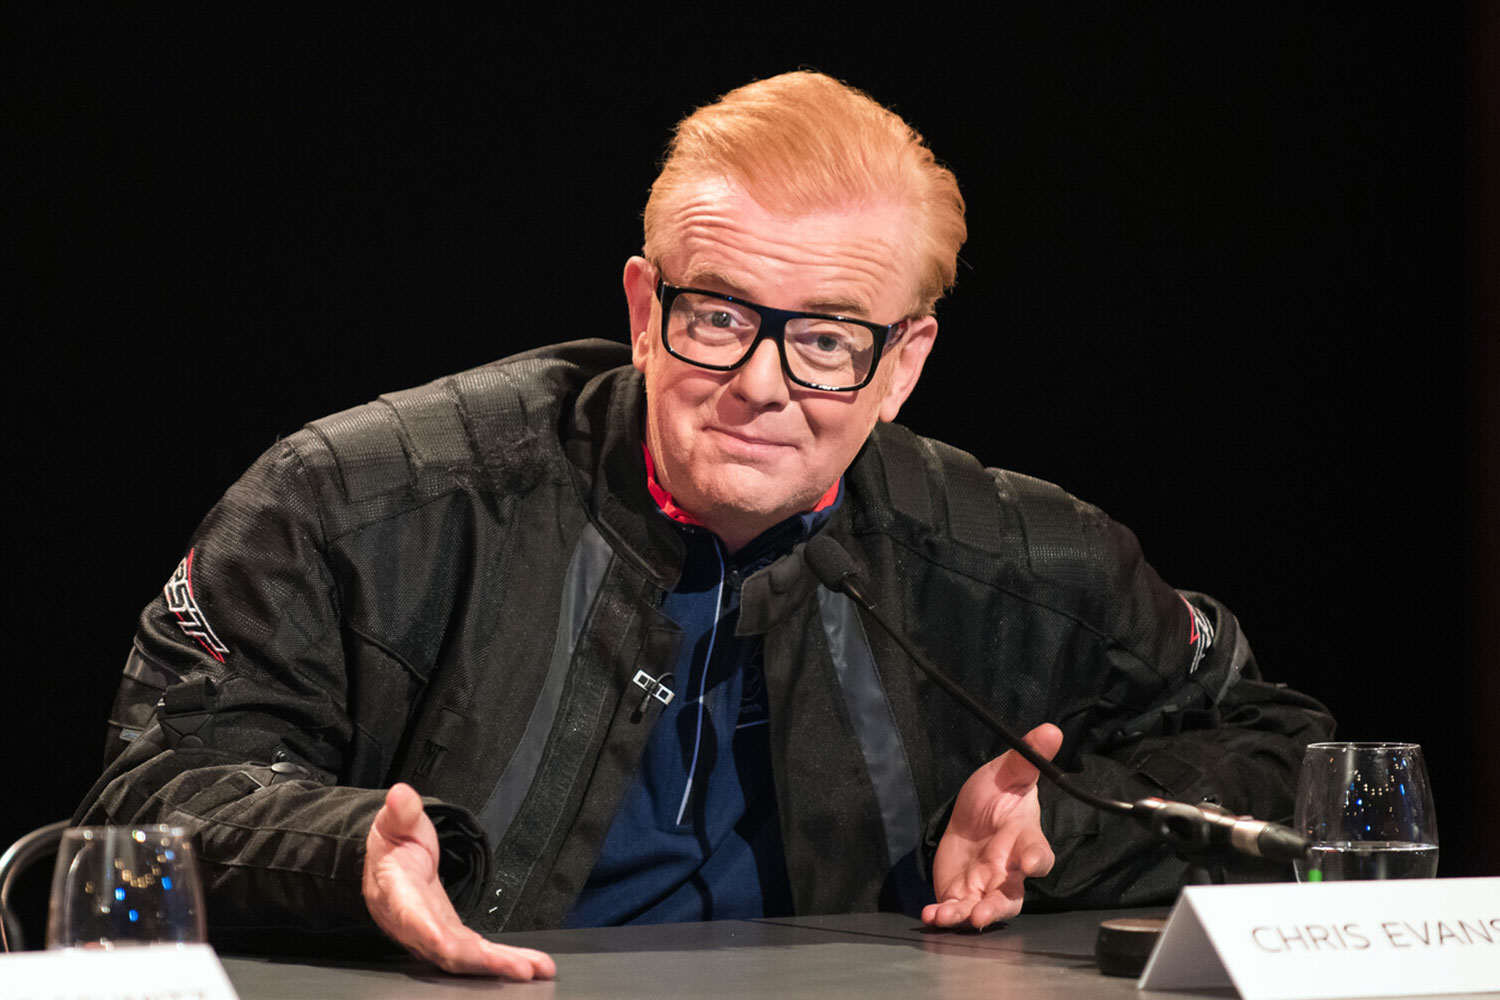 One Of The Main Top Gear Presenters Has Quit The Show Already chris evans top gear